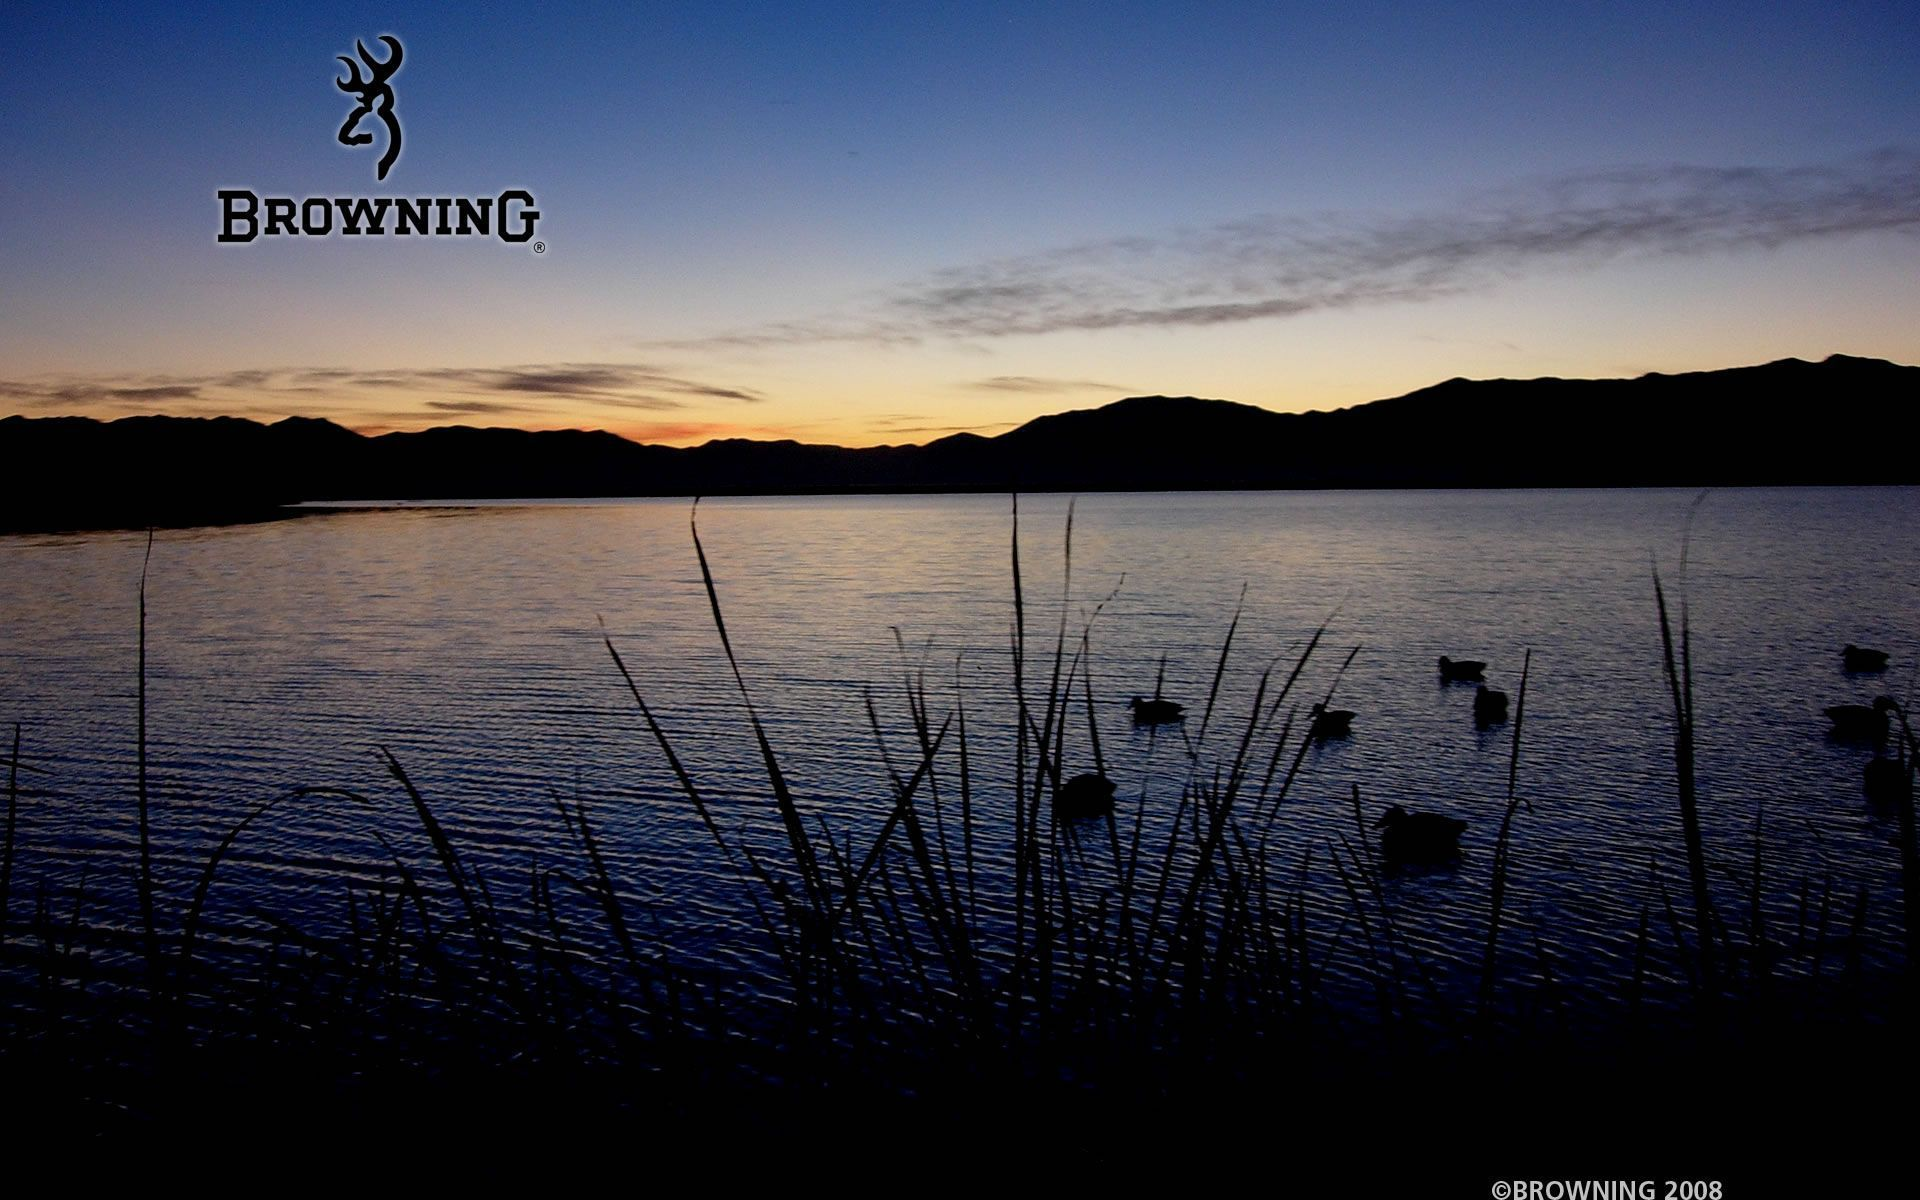 Browning Desktop Wallpaper